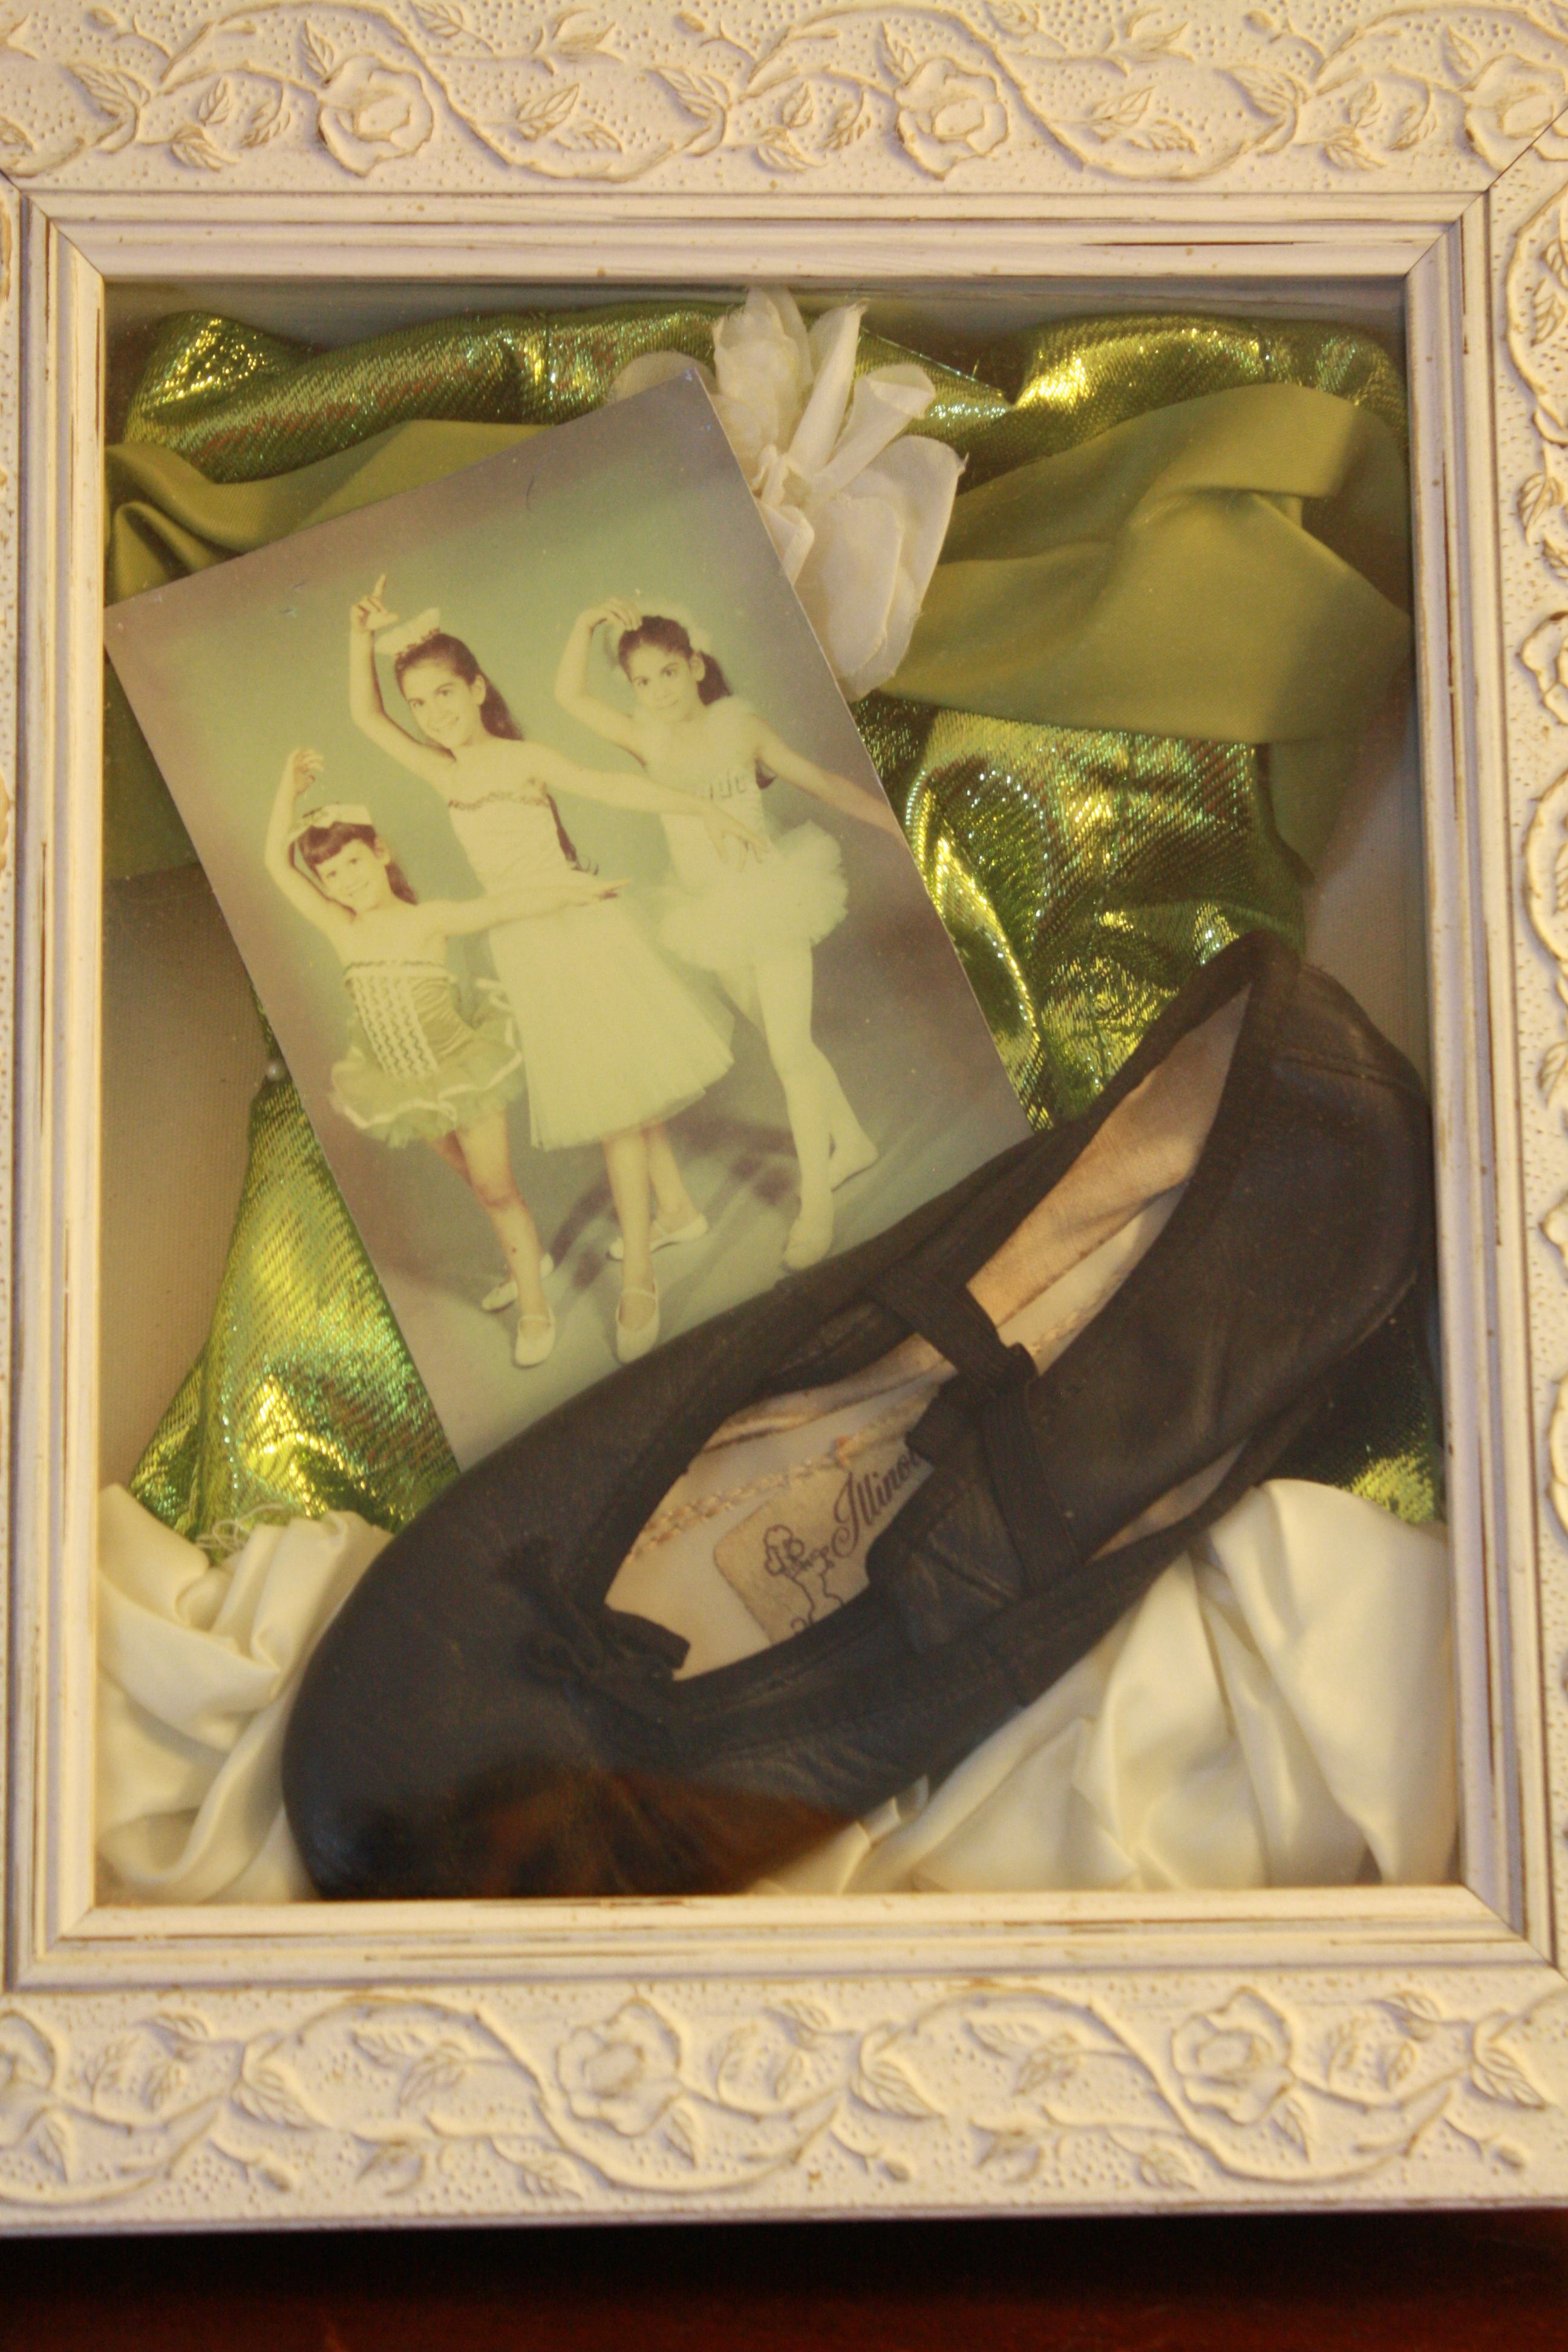 Shadow box of an old dance recital costume, ballet shoes, & photo   #shadow box #costumes #old photographs #vintage #DIY #decorating with old clothes #memorabilia #family photos #Jill Soghomonian CID